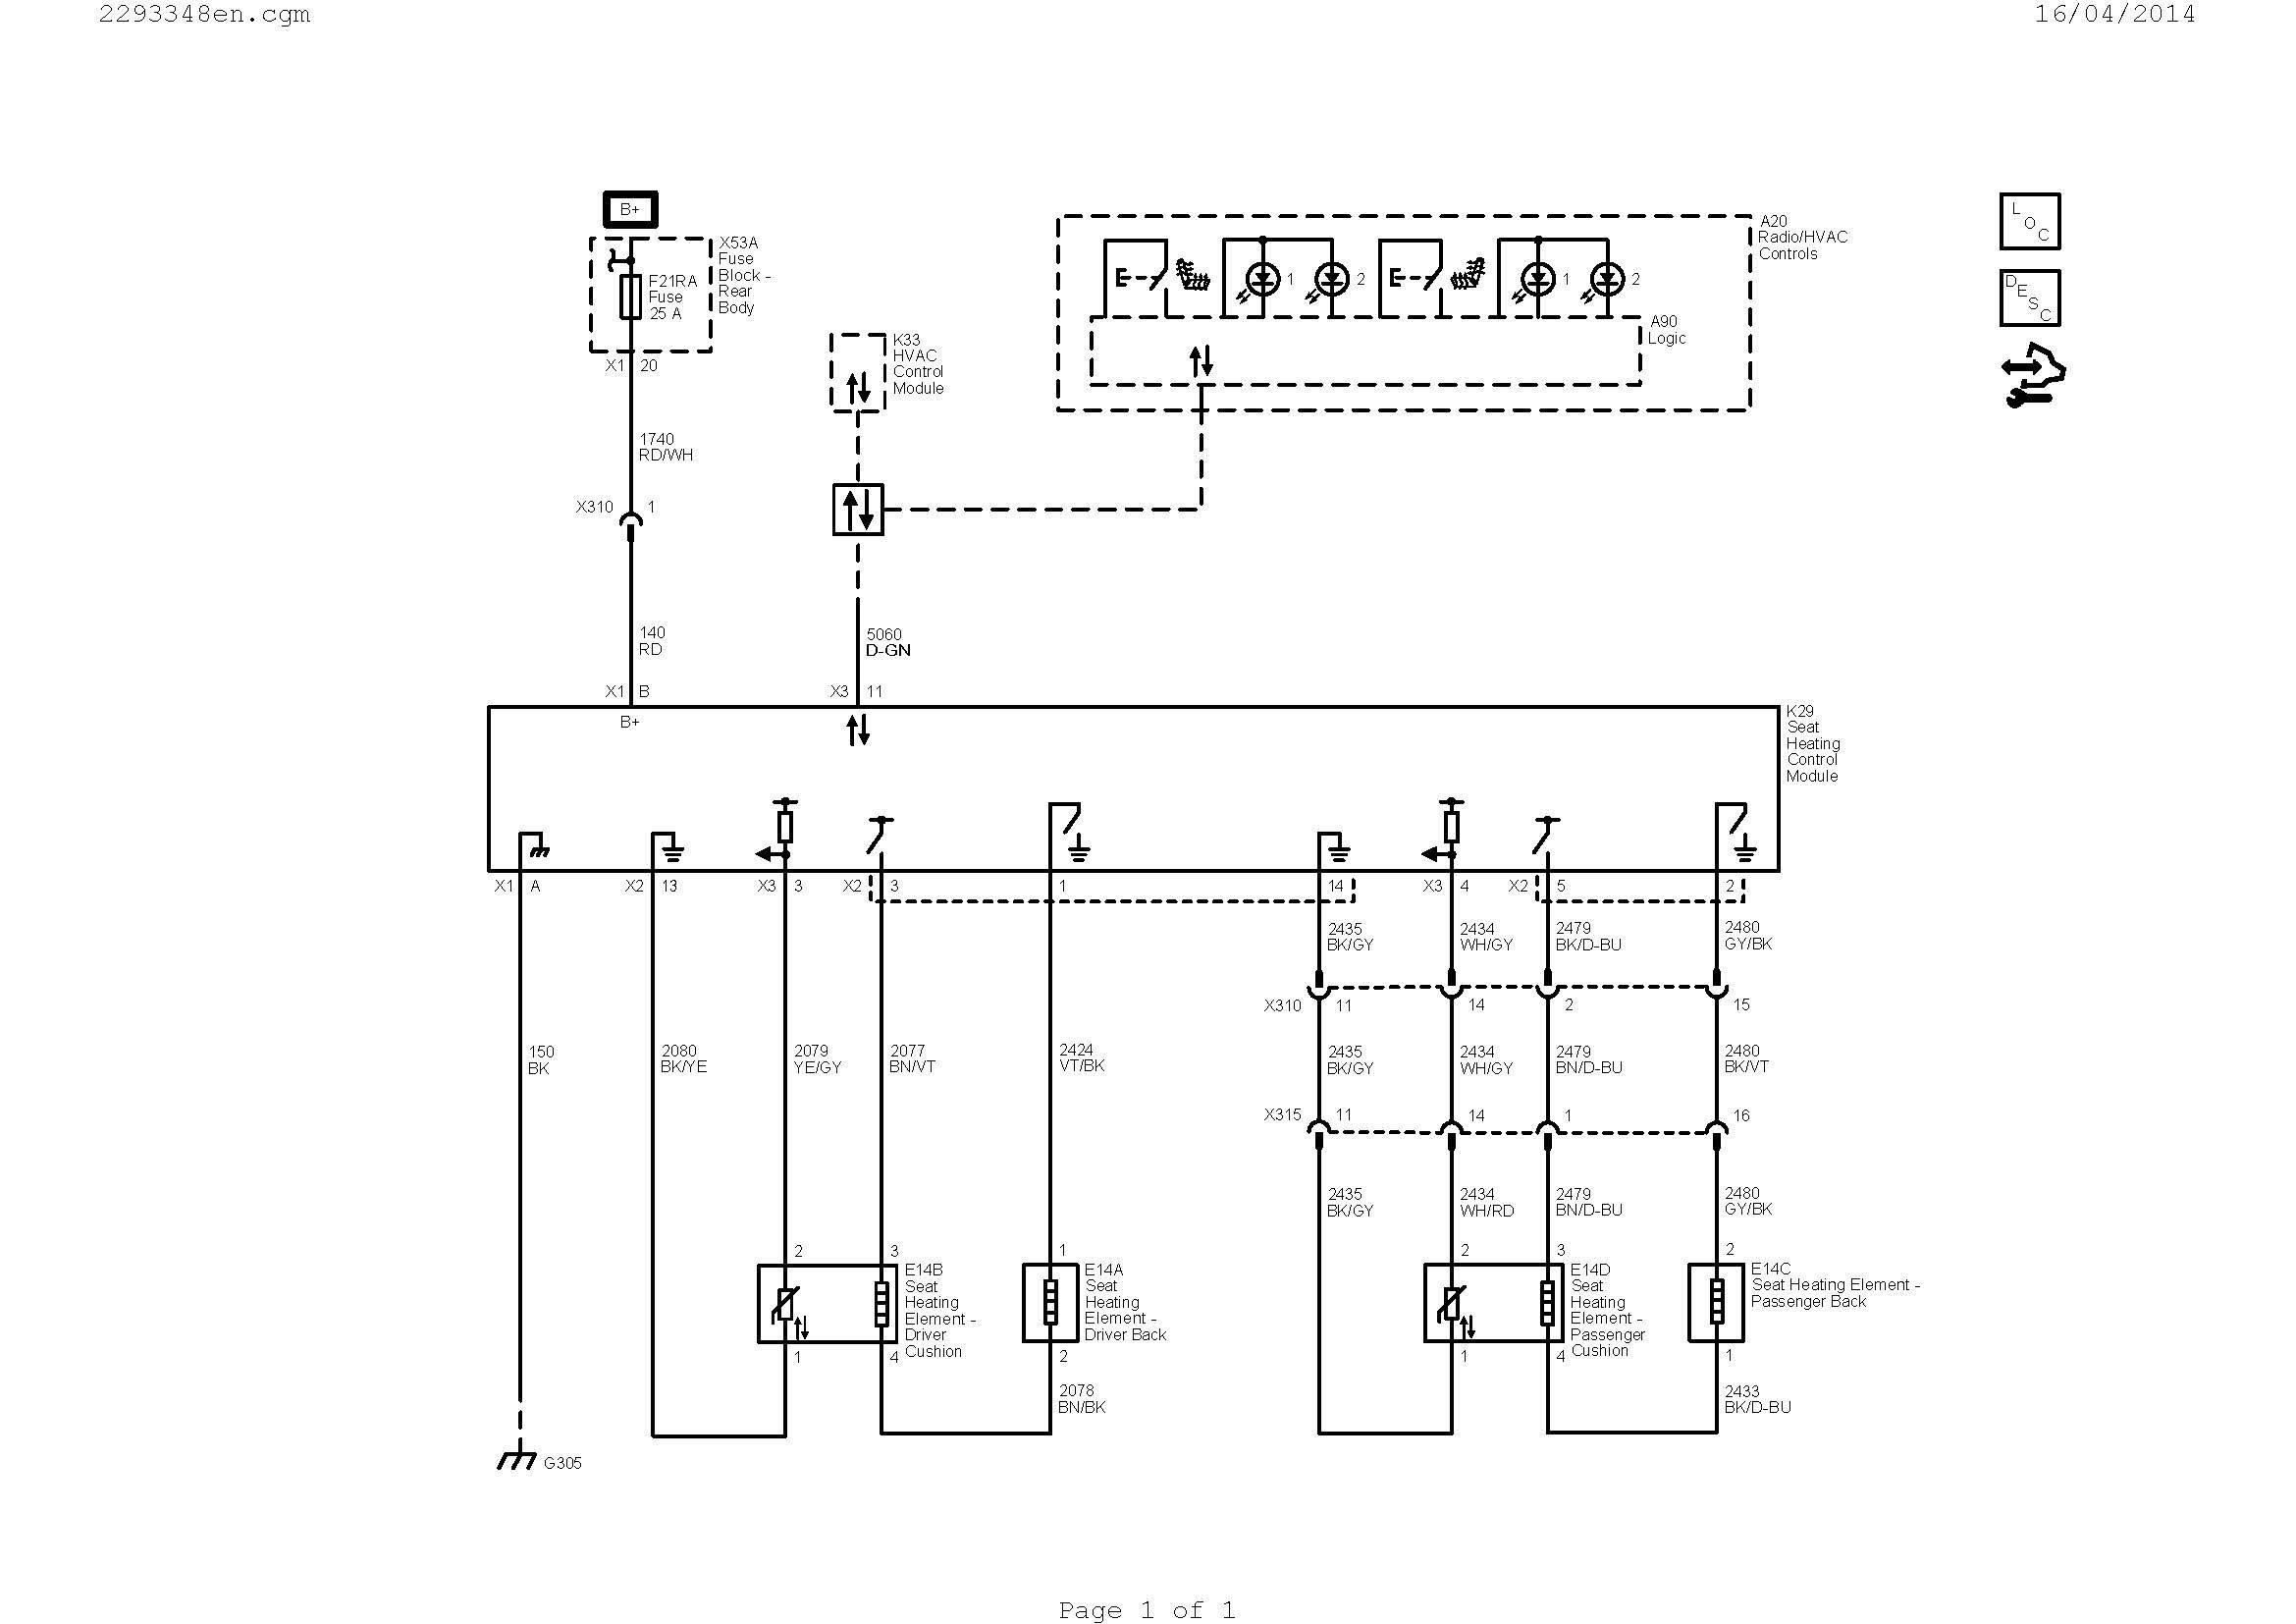 idec sh2b 05 wiring diagram Download-Wiring A Ac thermostat Diagram New Wiring Diagram Ac Valid Hvac Hvac thermostat Wiring Diagram 20-l